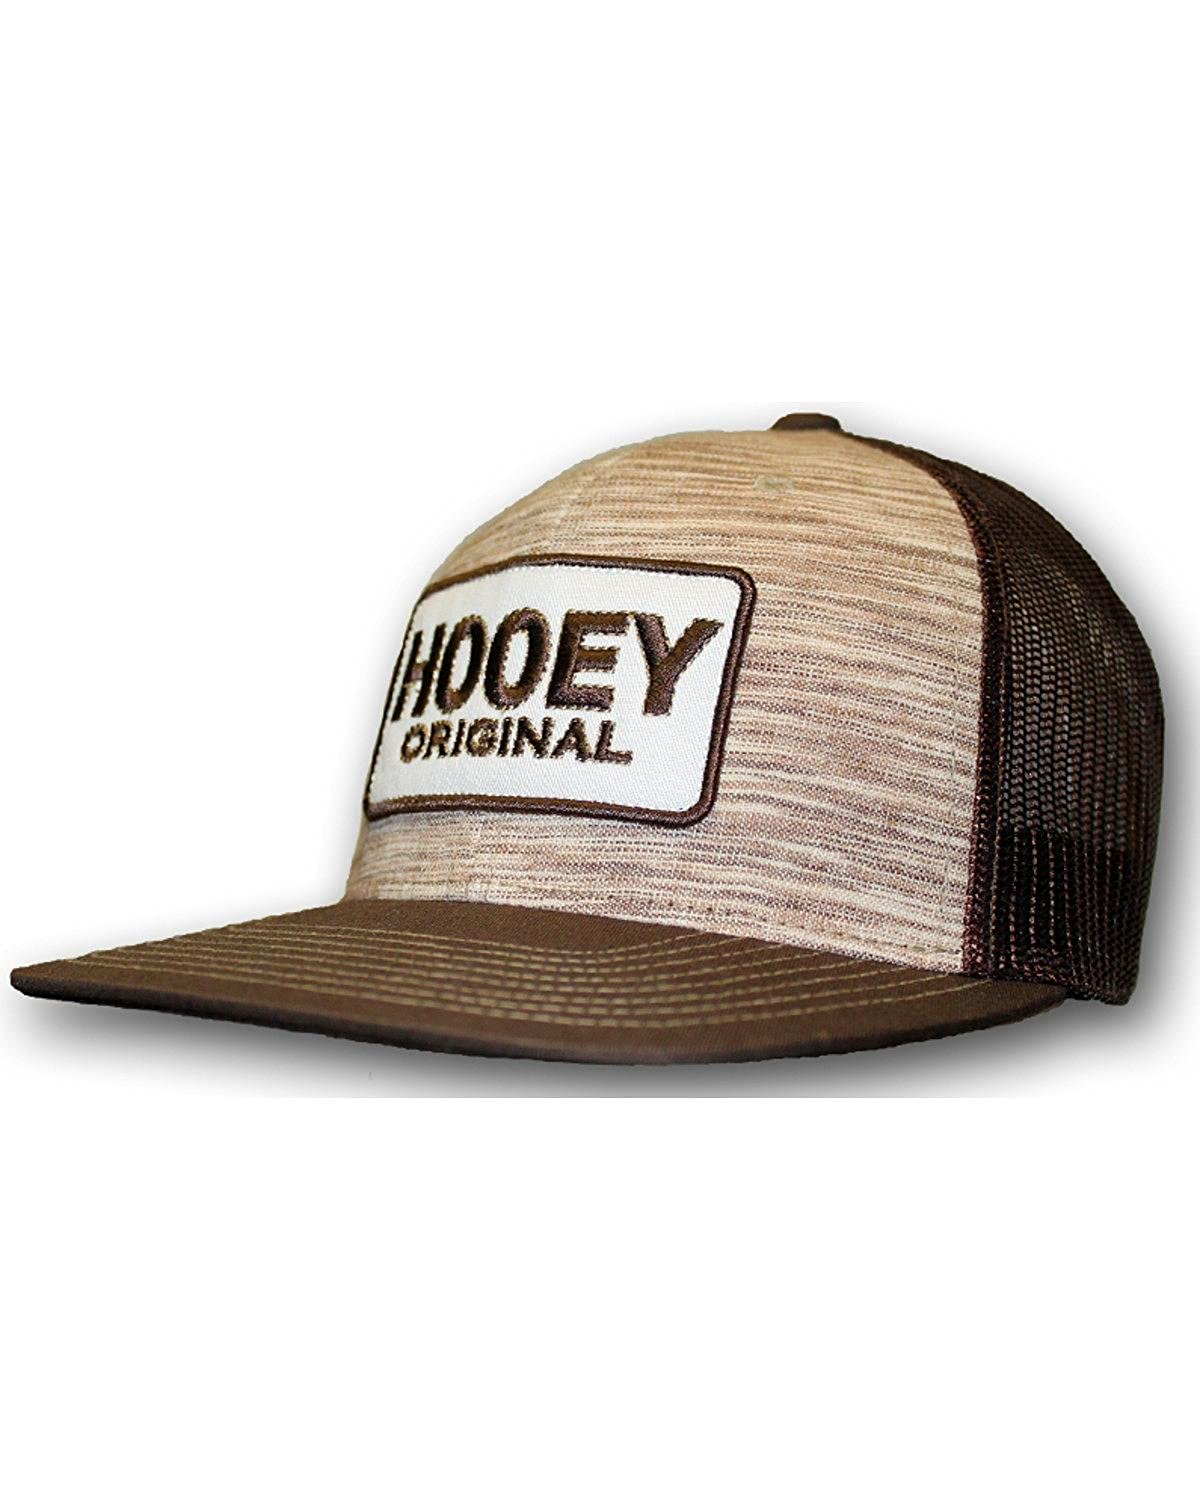 buy online 3c7e1 c0cef HOOey Men s Original Logo Trucker Hat Brown One Size at Amazon Men s  Clothing store